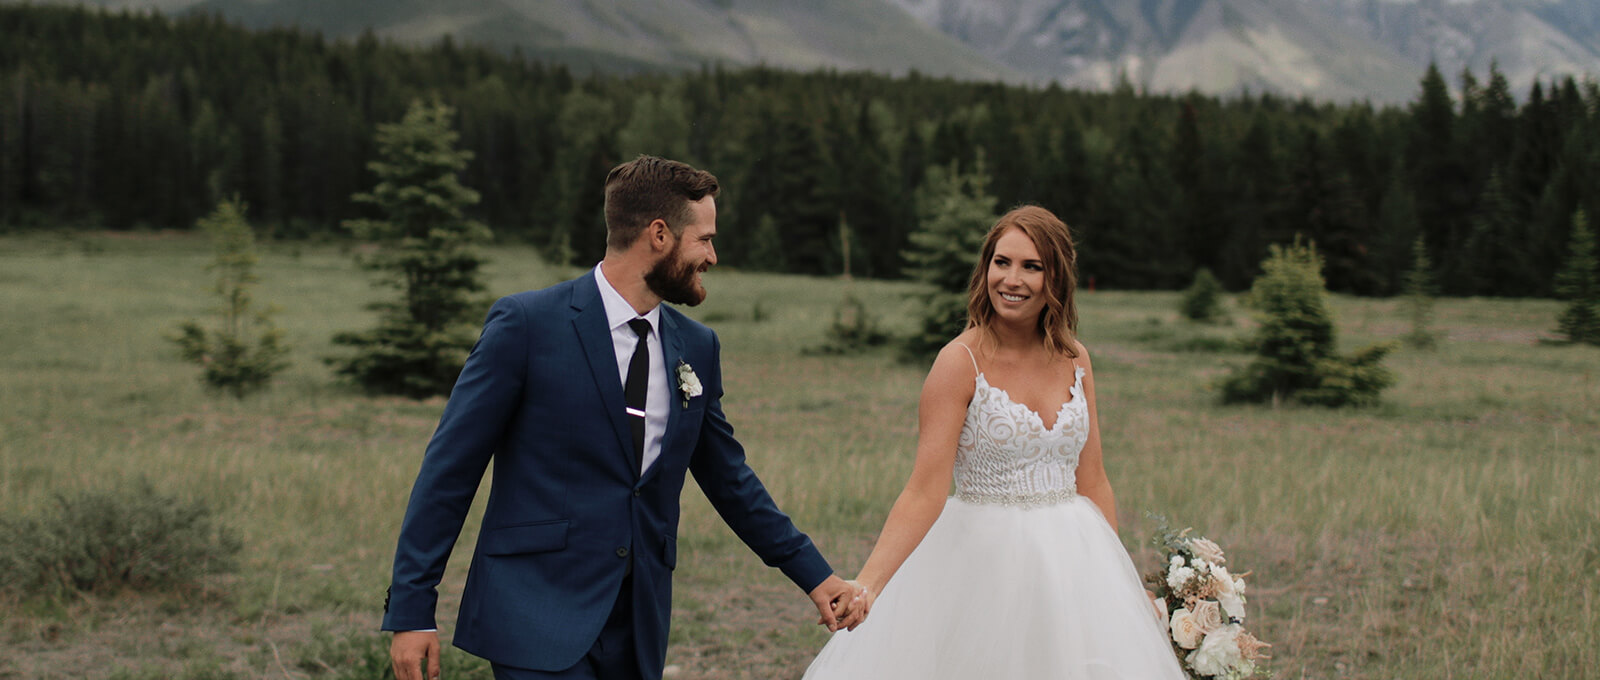 a banff wedding film